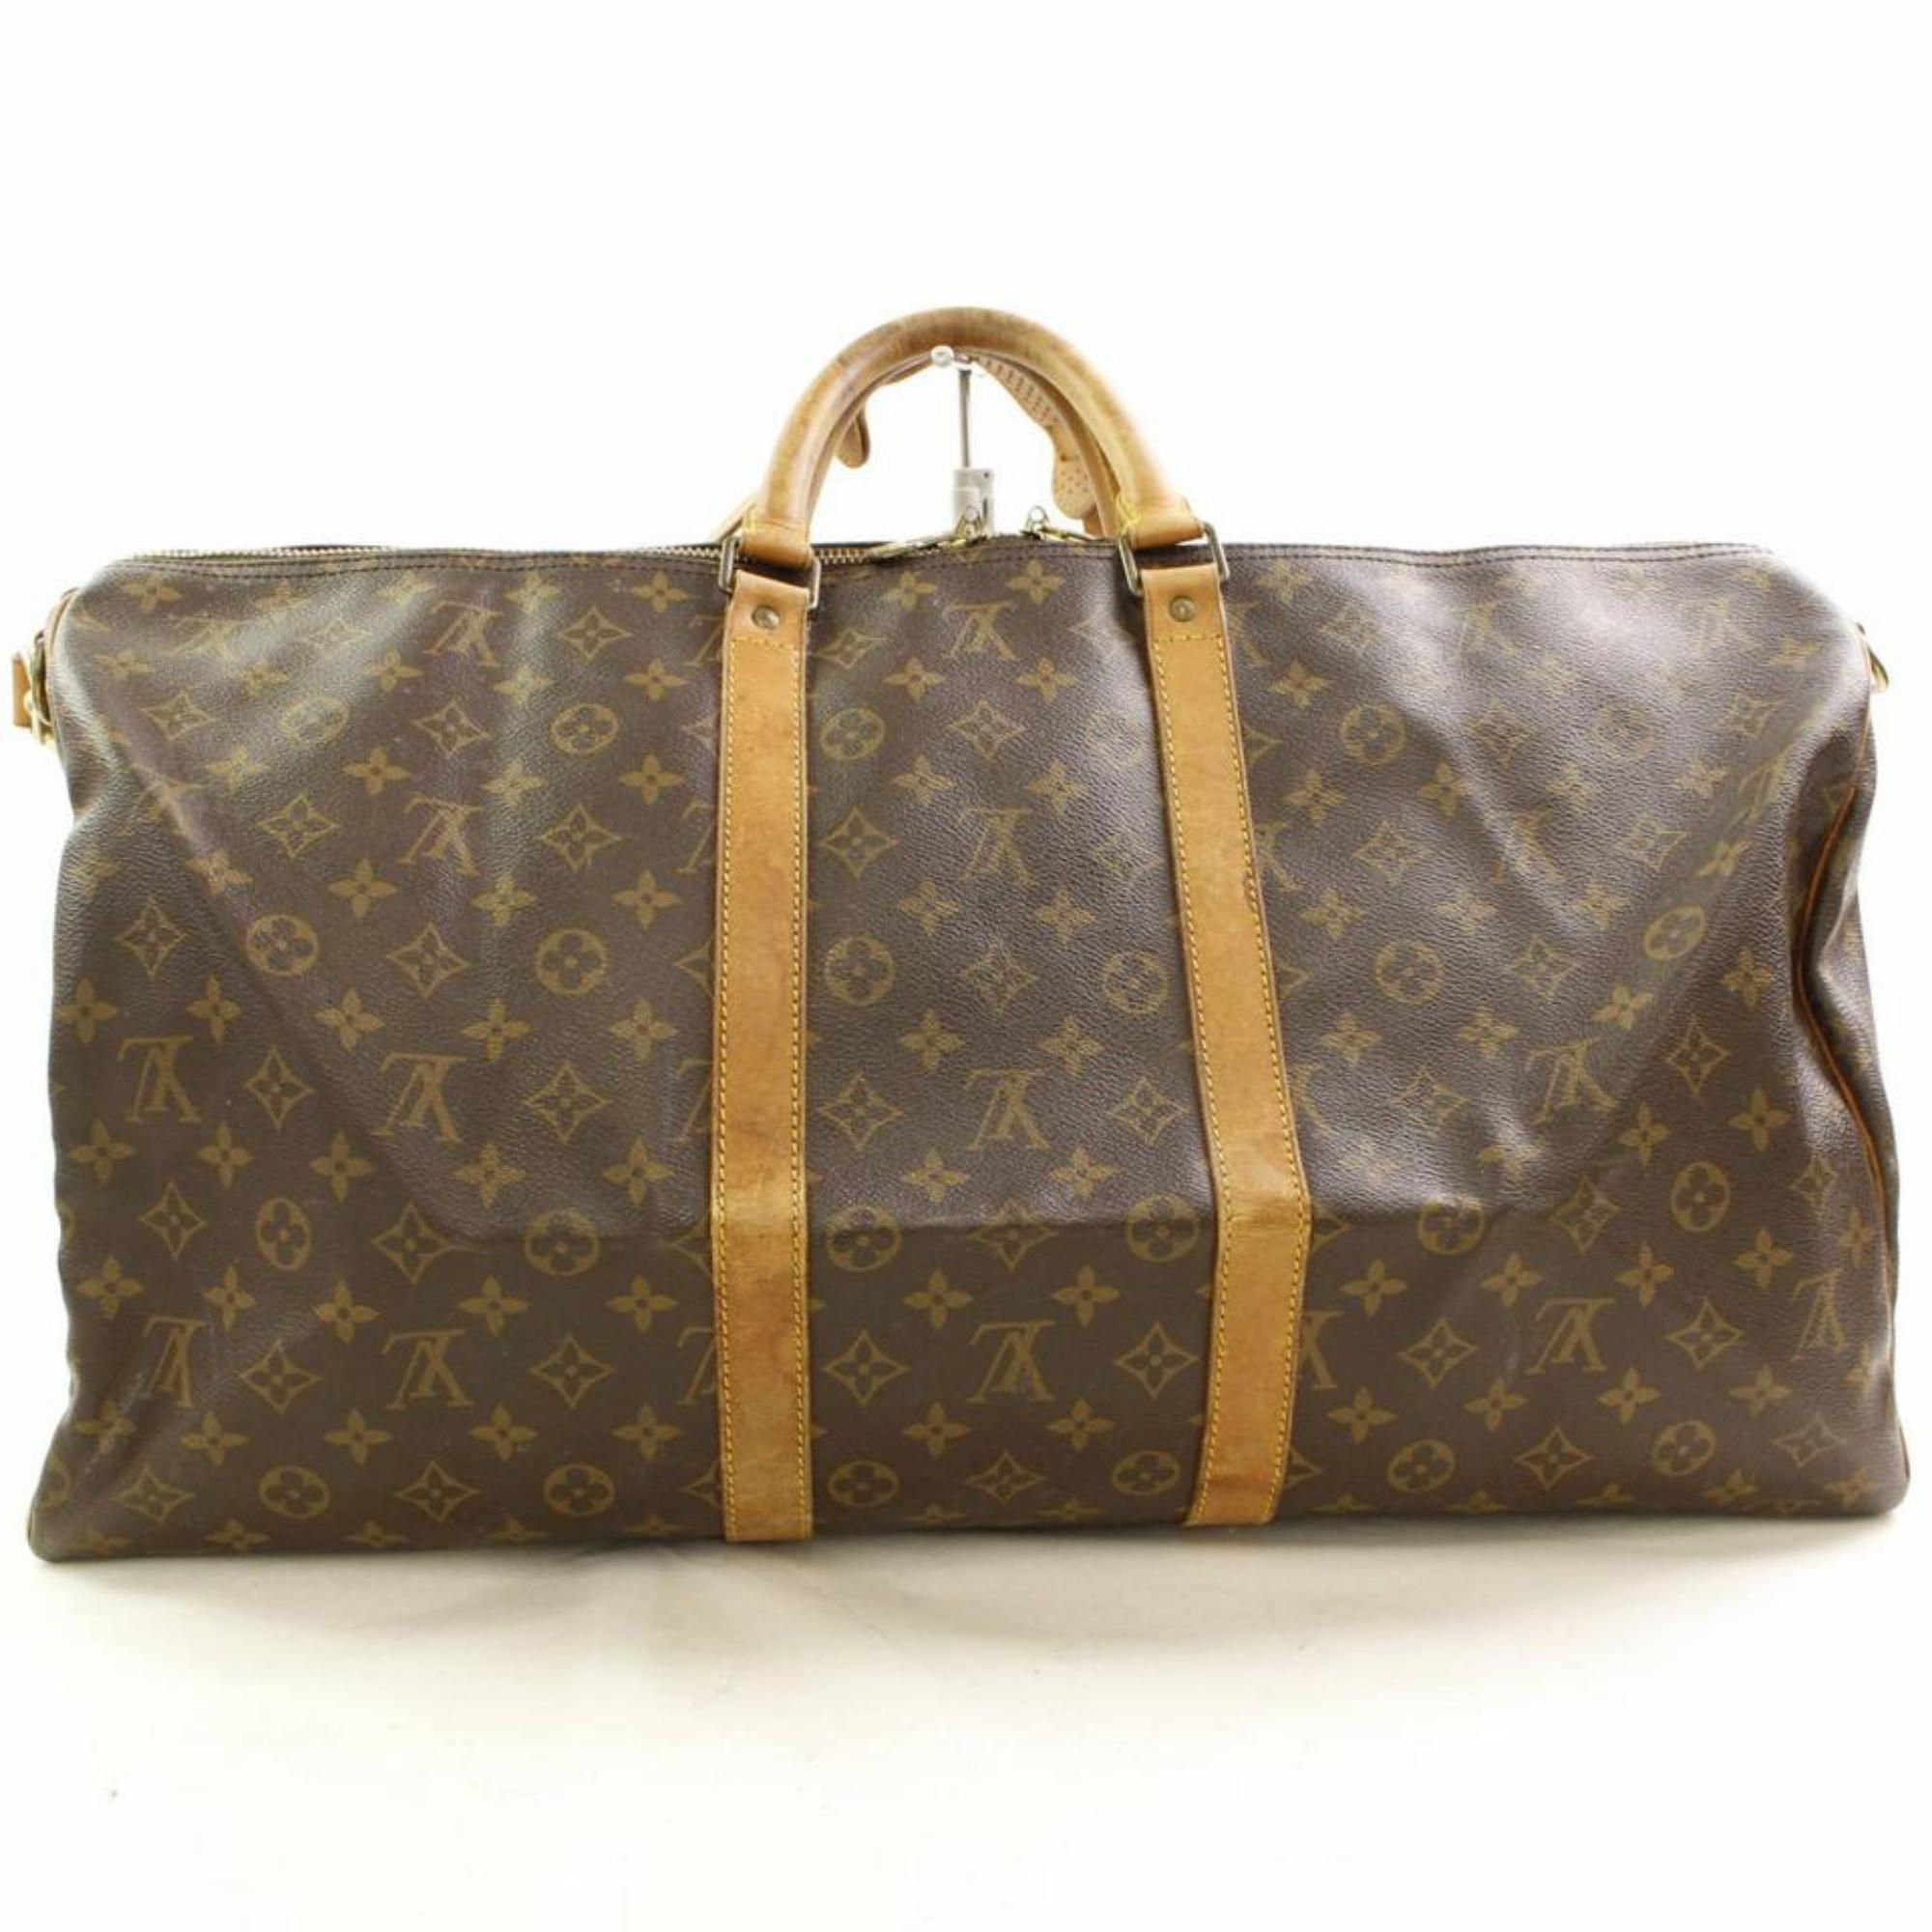 fef1801a8c47 Louis Vuitton Keepall Bandouliere 55 866482 Coated Canvas Weekend Travel Bag  For Sale at 1stdibs